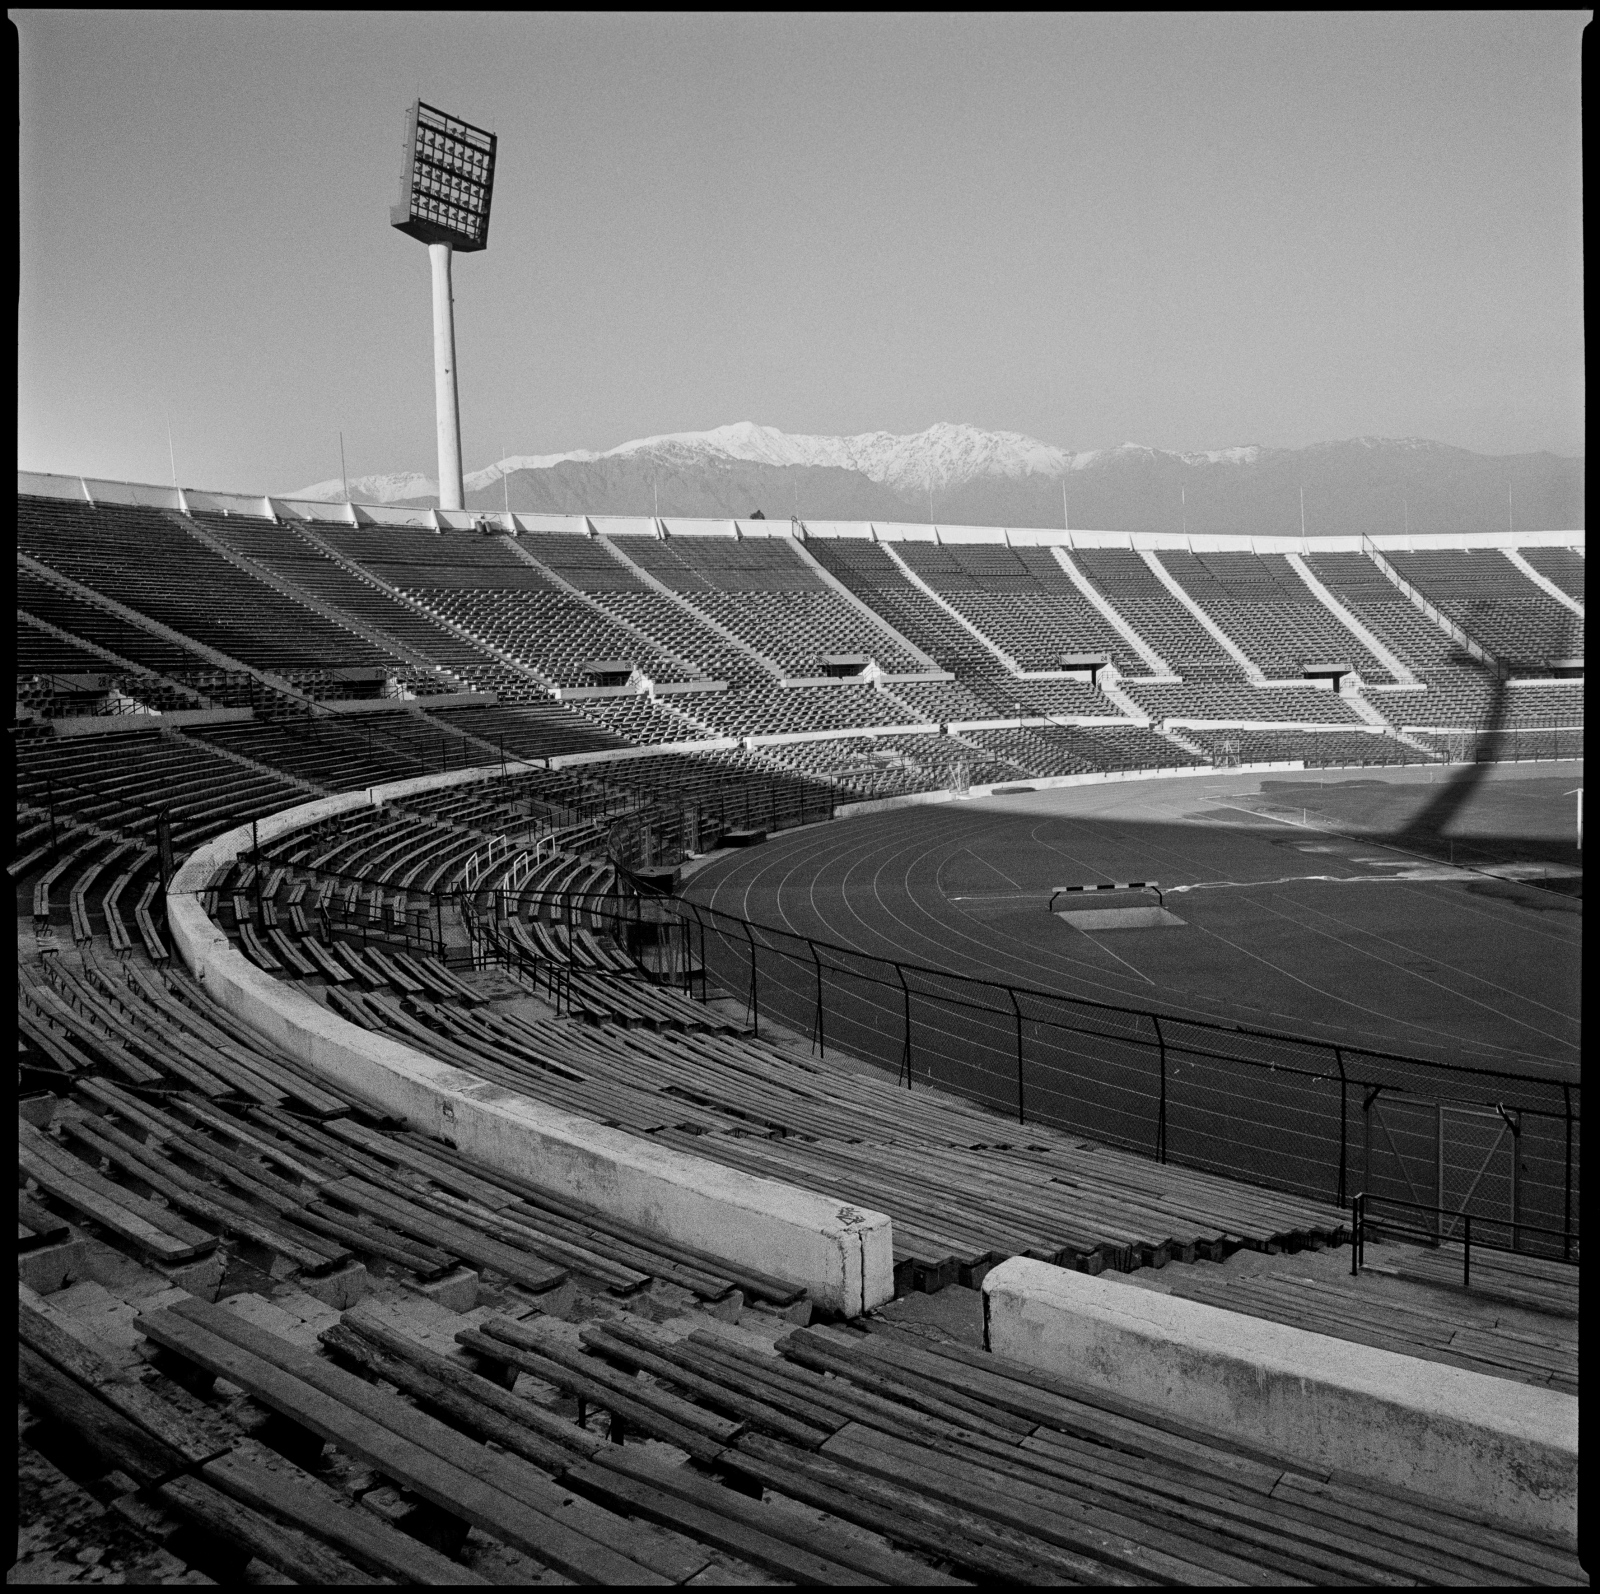 Chile national stadium. This stadium was used during the military coup of September 1973 as a concentration camp for the political opposition, and were interrogation, torture and death were commonly used. Santiago, Chile, November 2008.